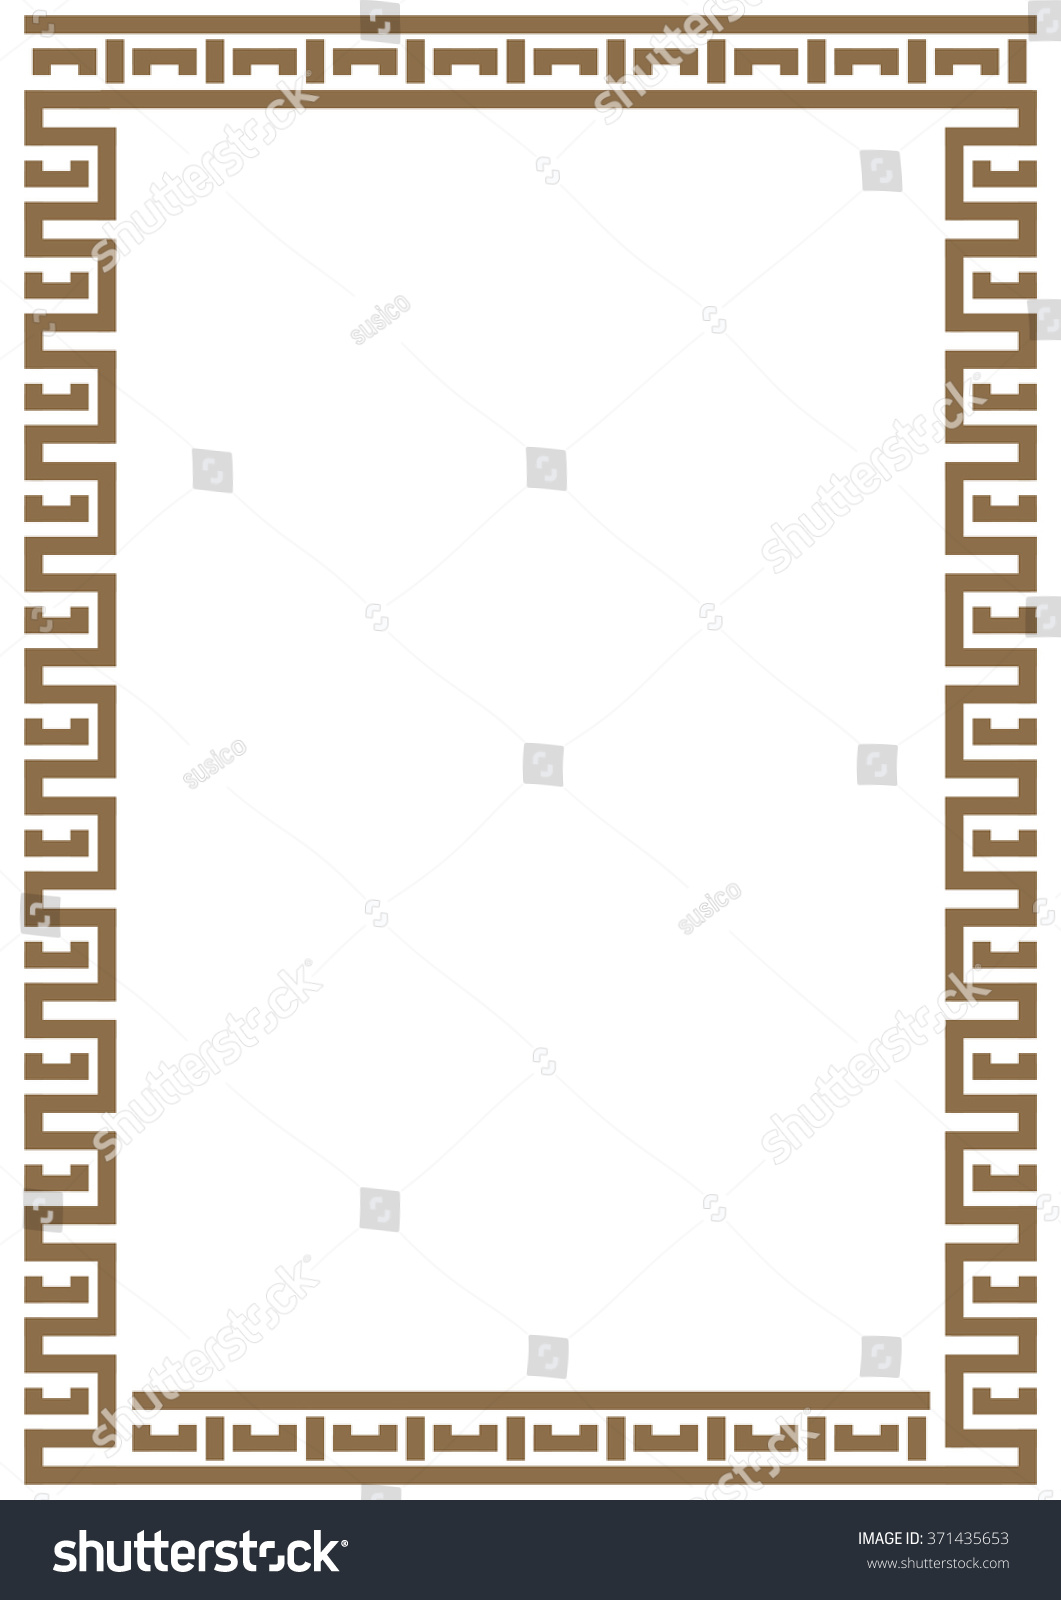 Vector certificate border template additional design stock vector vector certificate border template with additional design elements xflitez Images